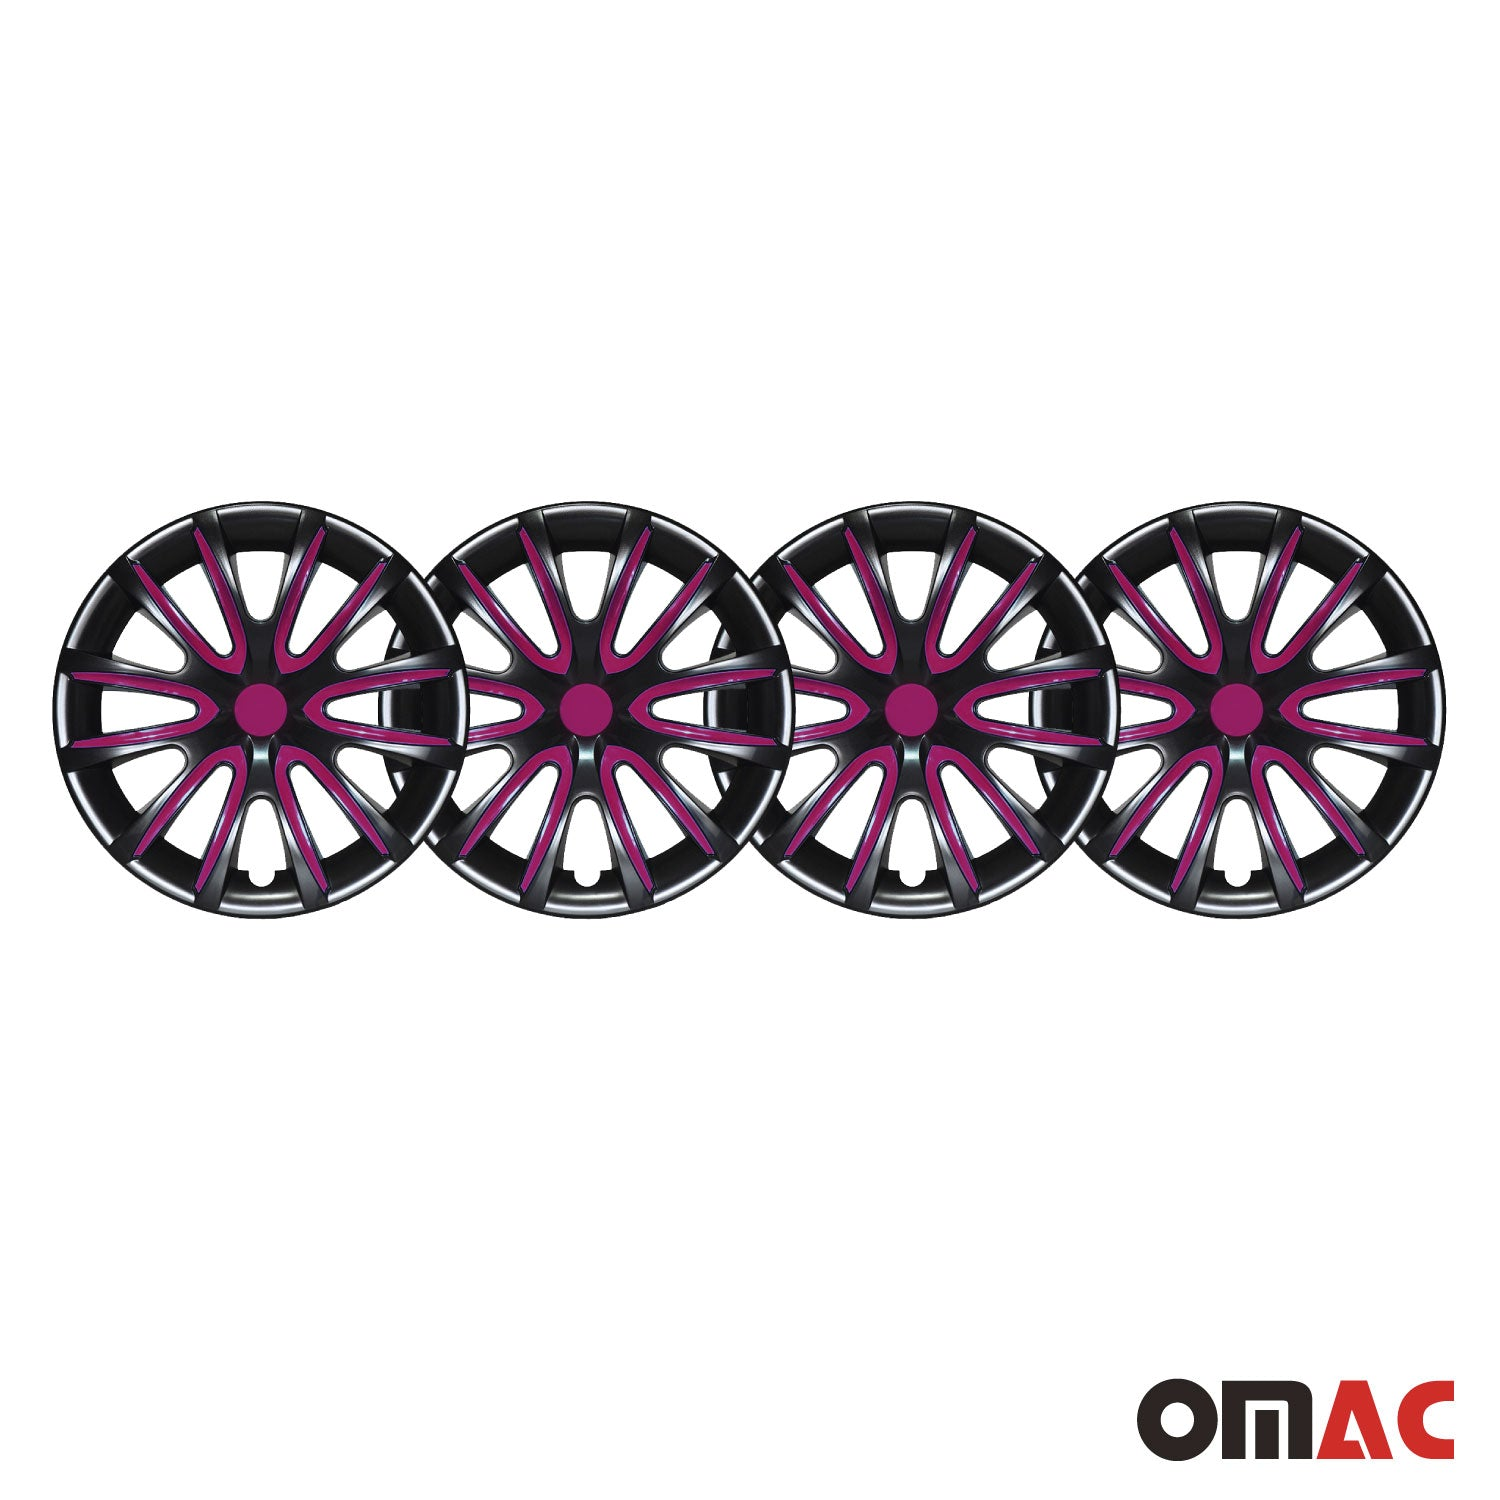 "16"" Inch Hub Cap Wheel Rim Cover Black & Violet for Toyota Sienna 4pcs Set"